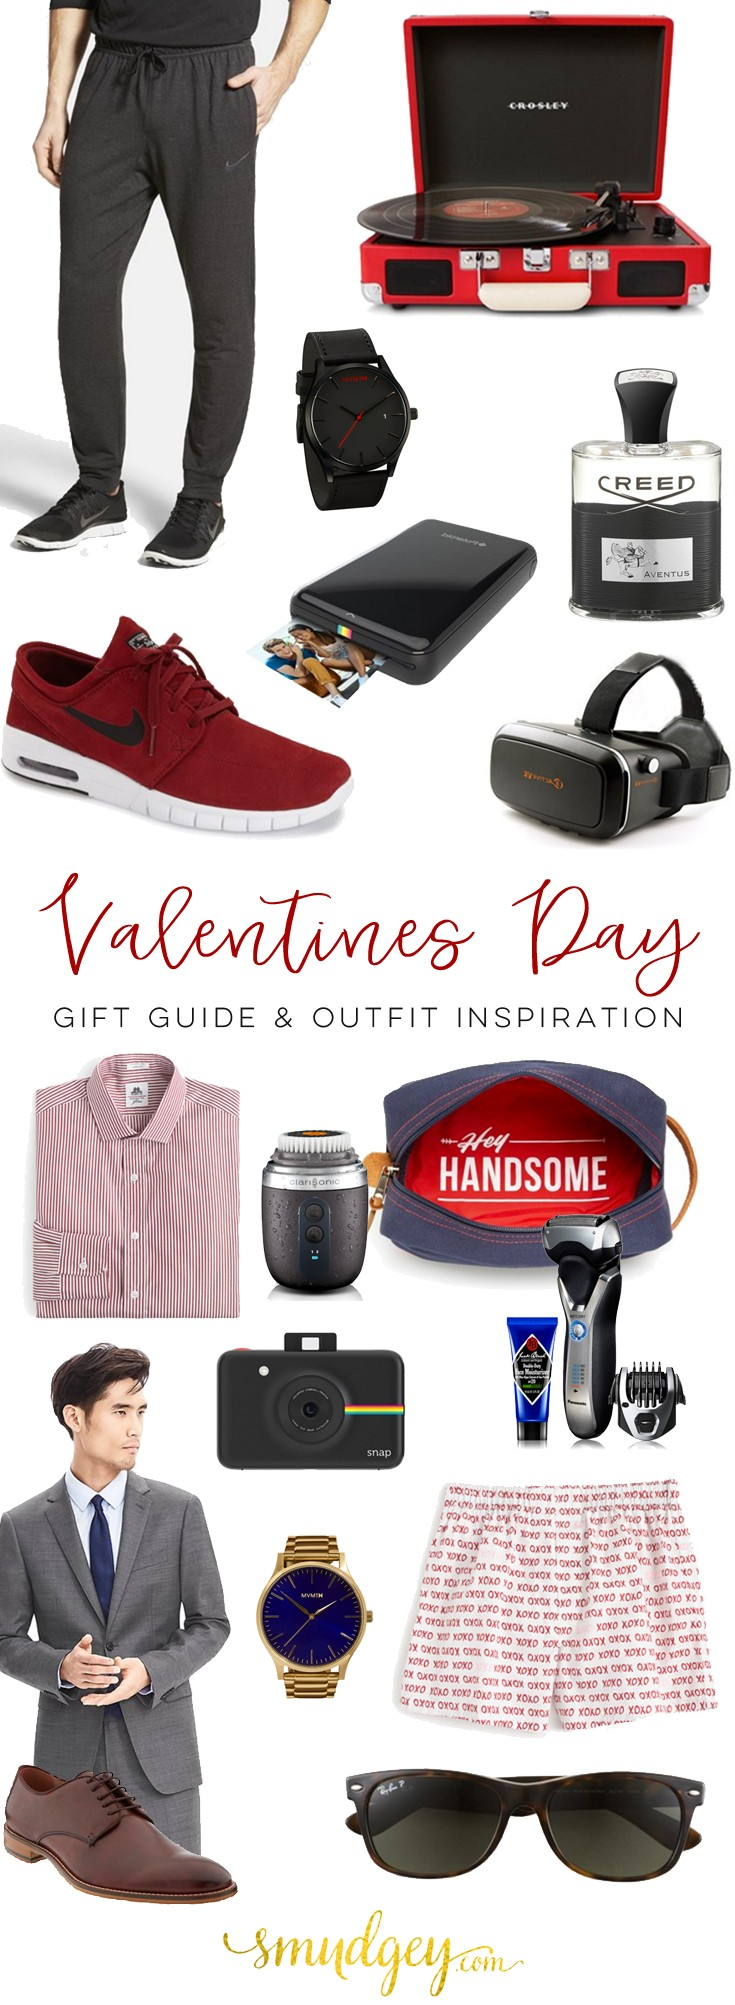 Valentine\'s Day Gift Guide for Him - 2016 - Smudgey